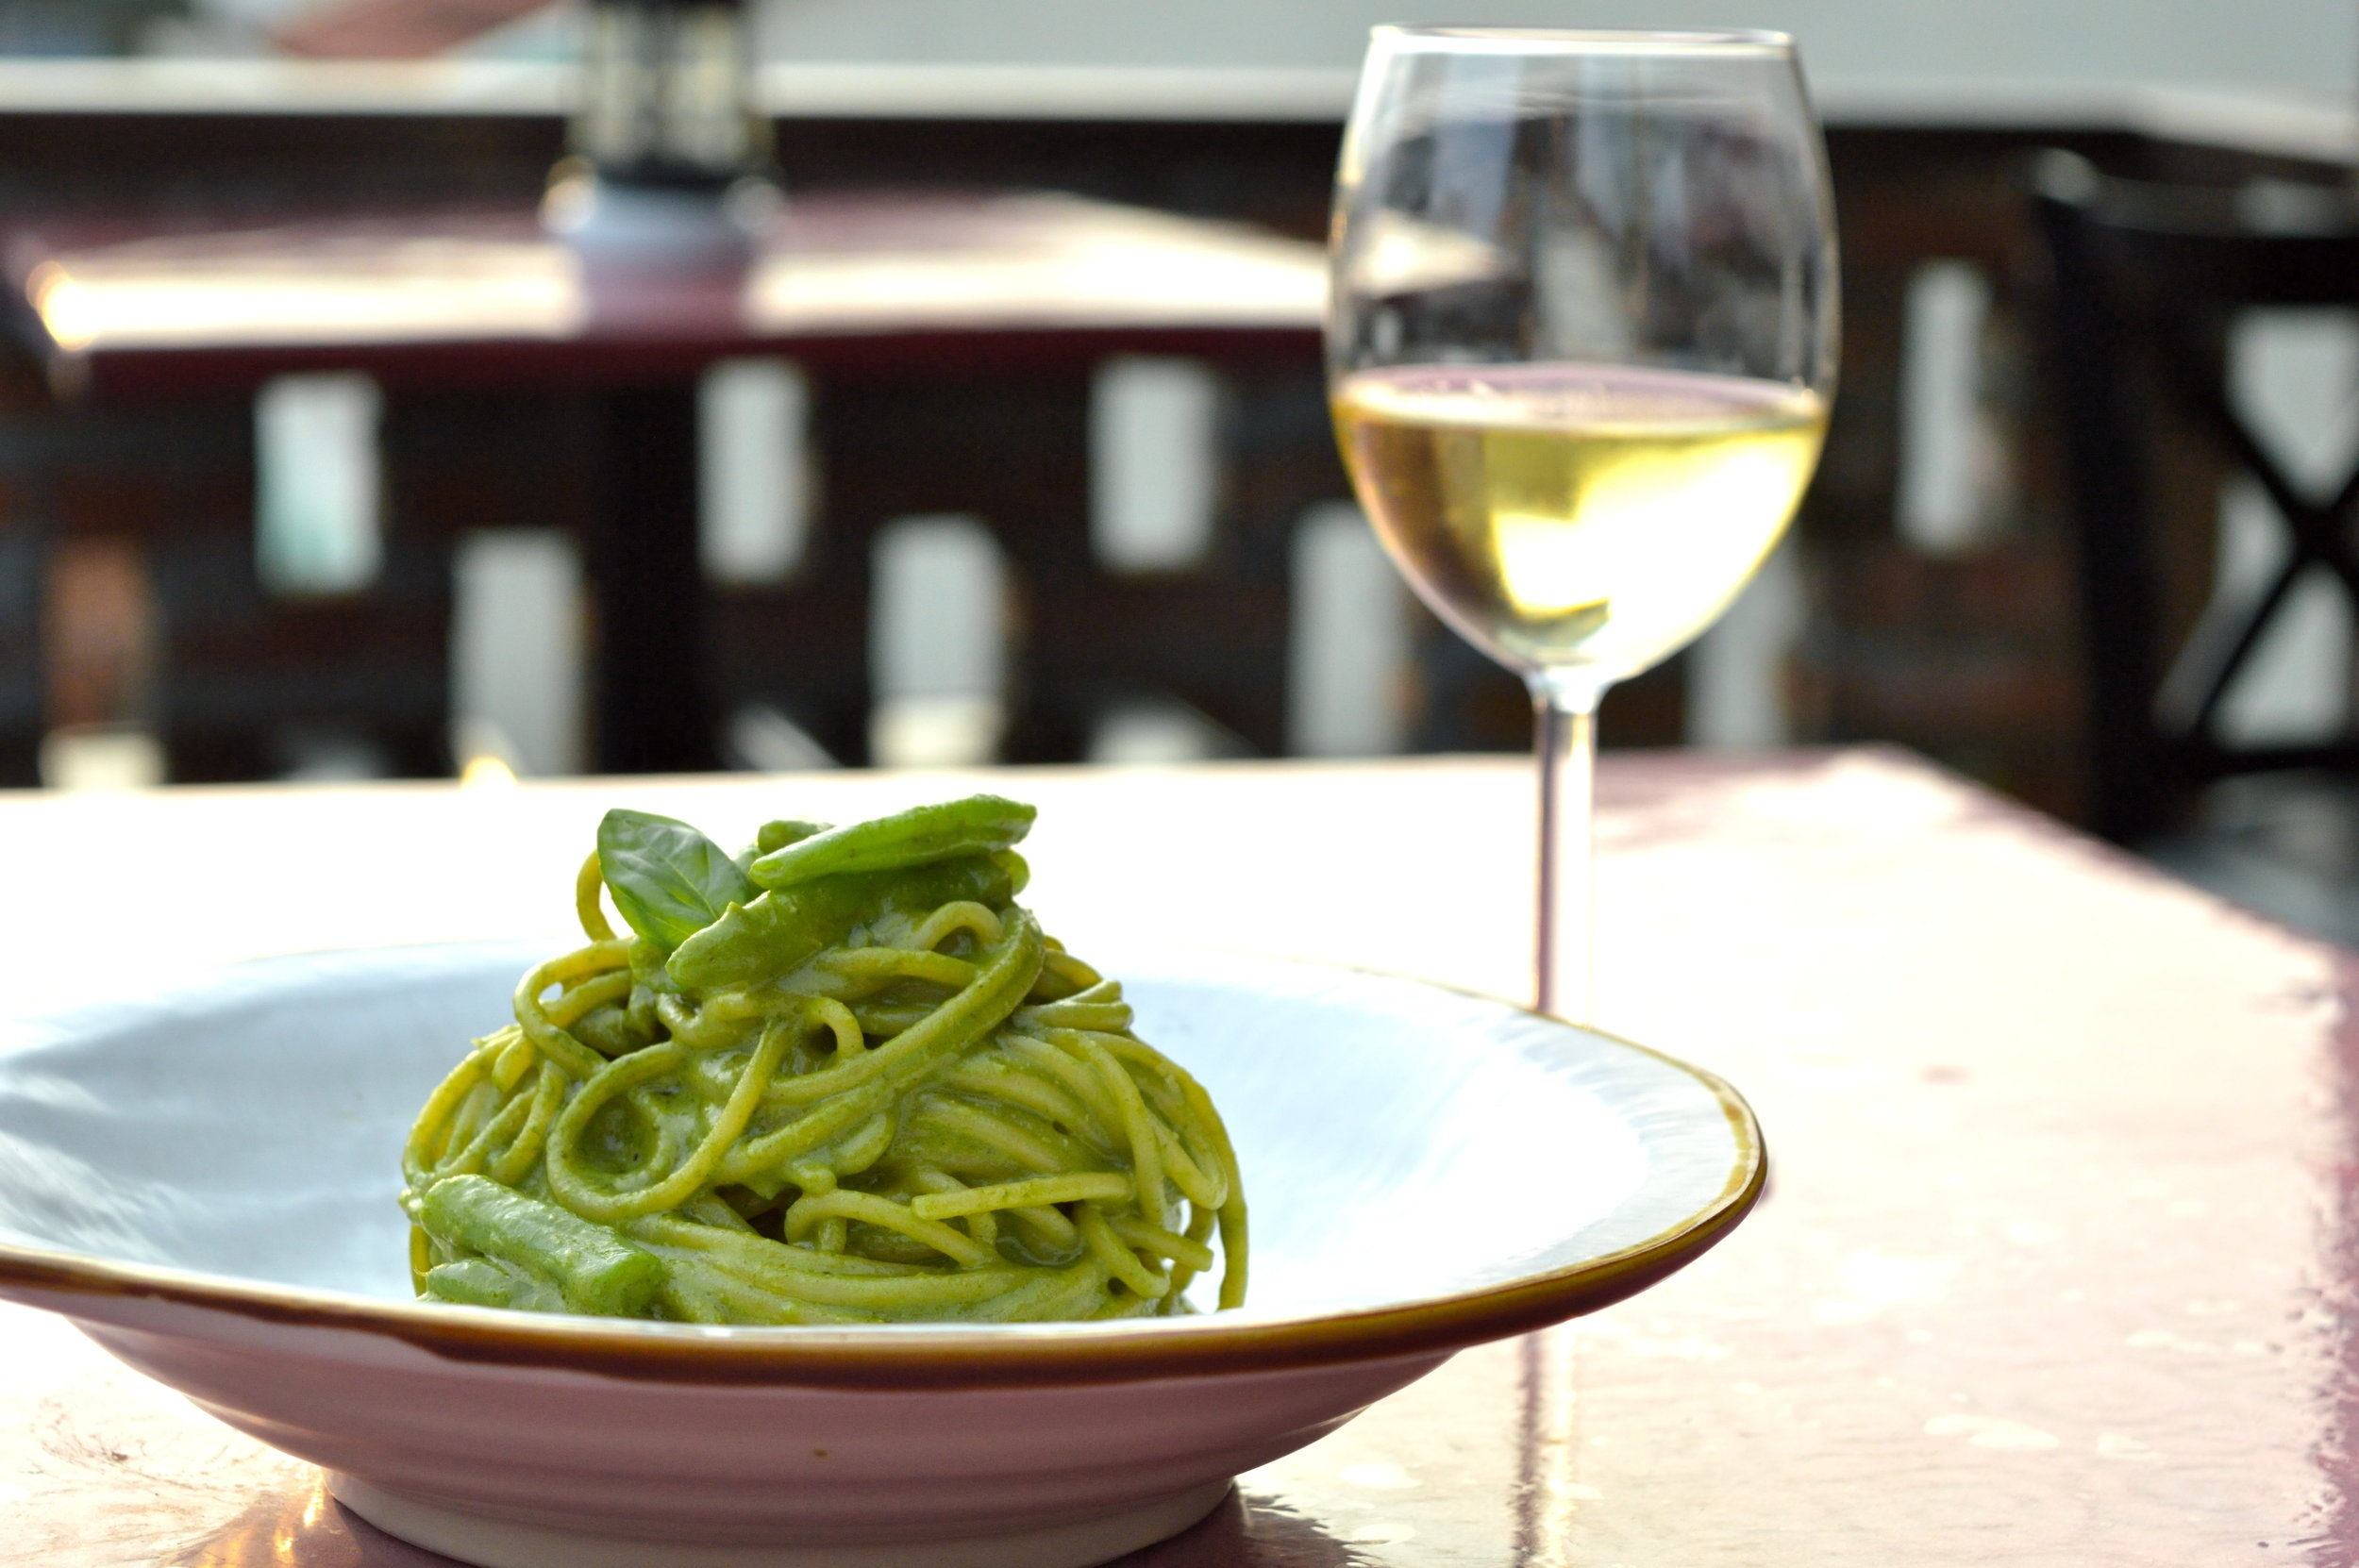 Spaghetti Green Days - Dining at D.O.P. @ The Attic bar